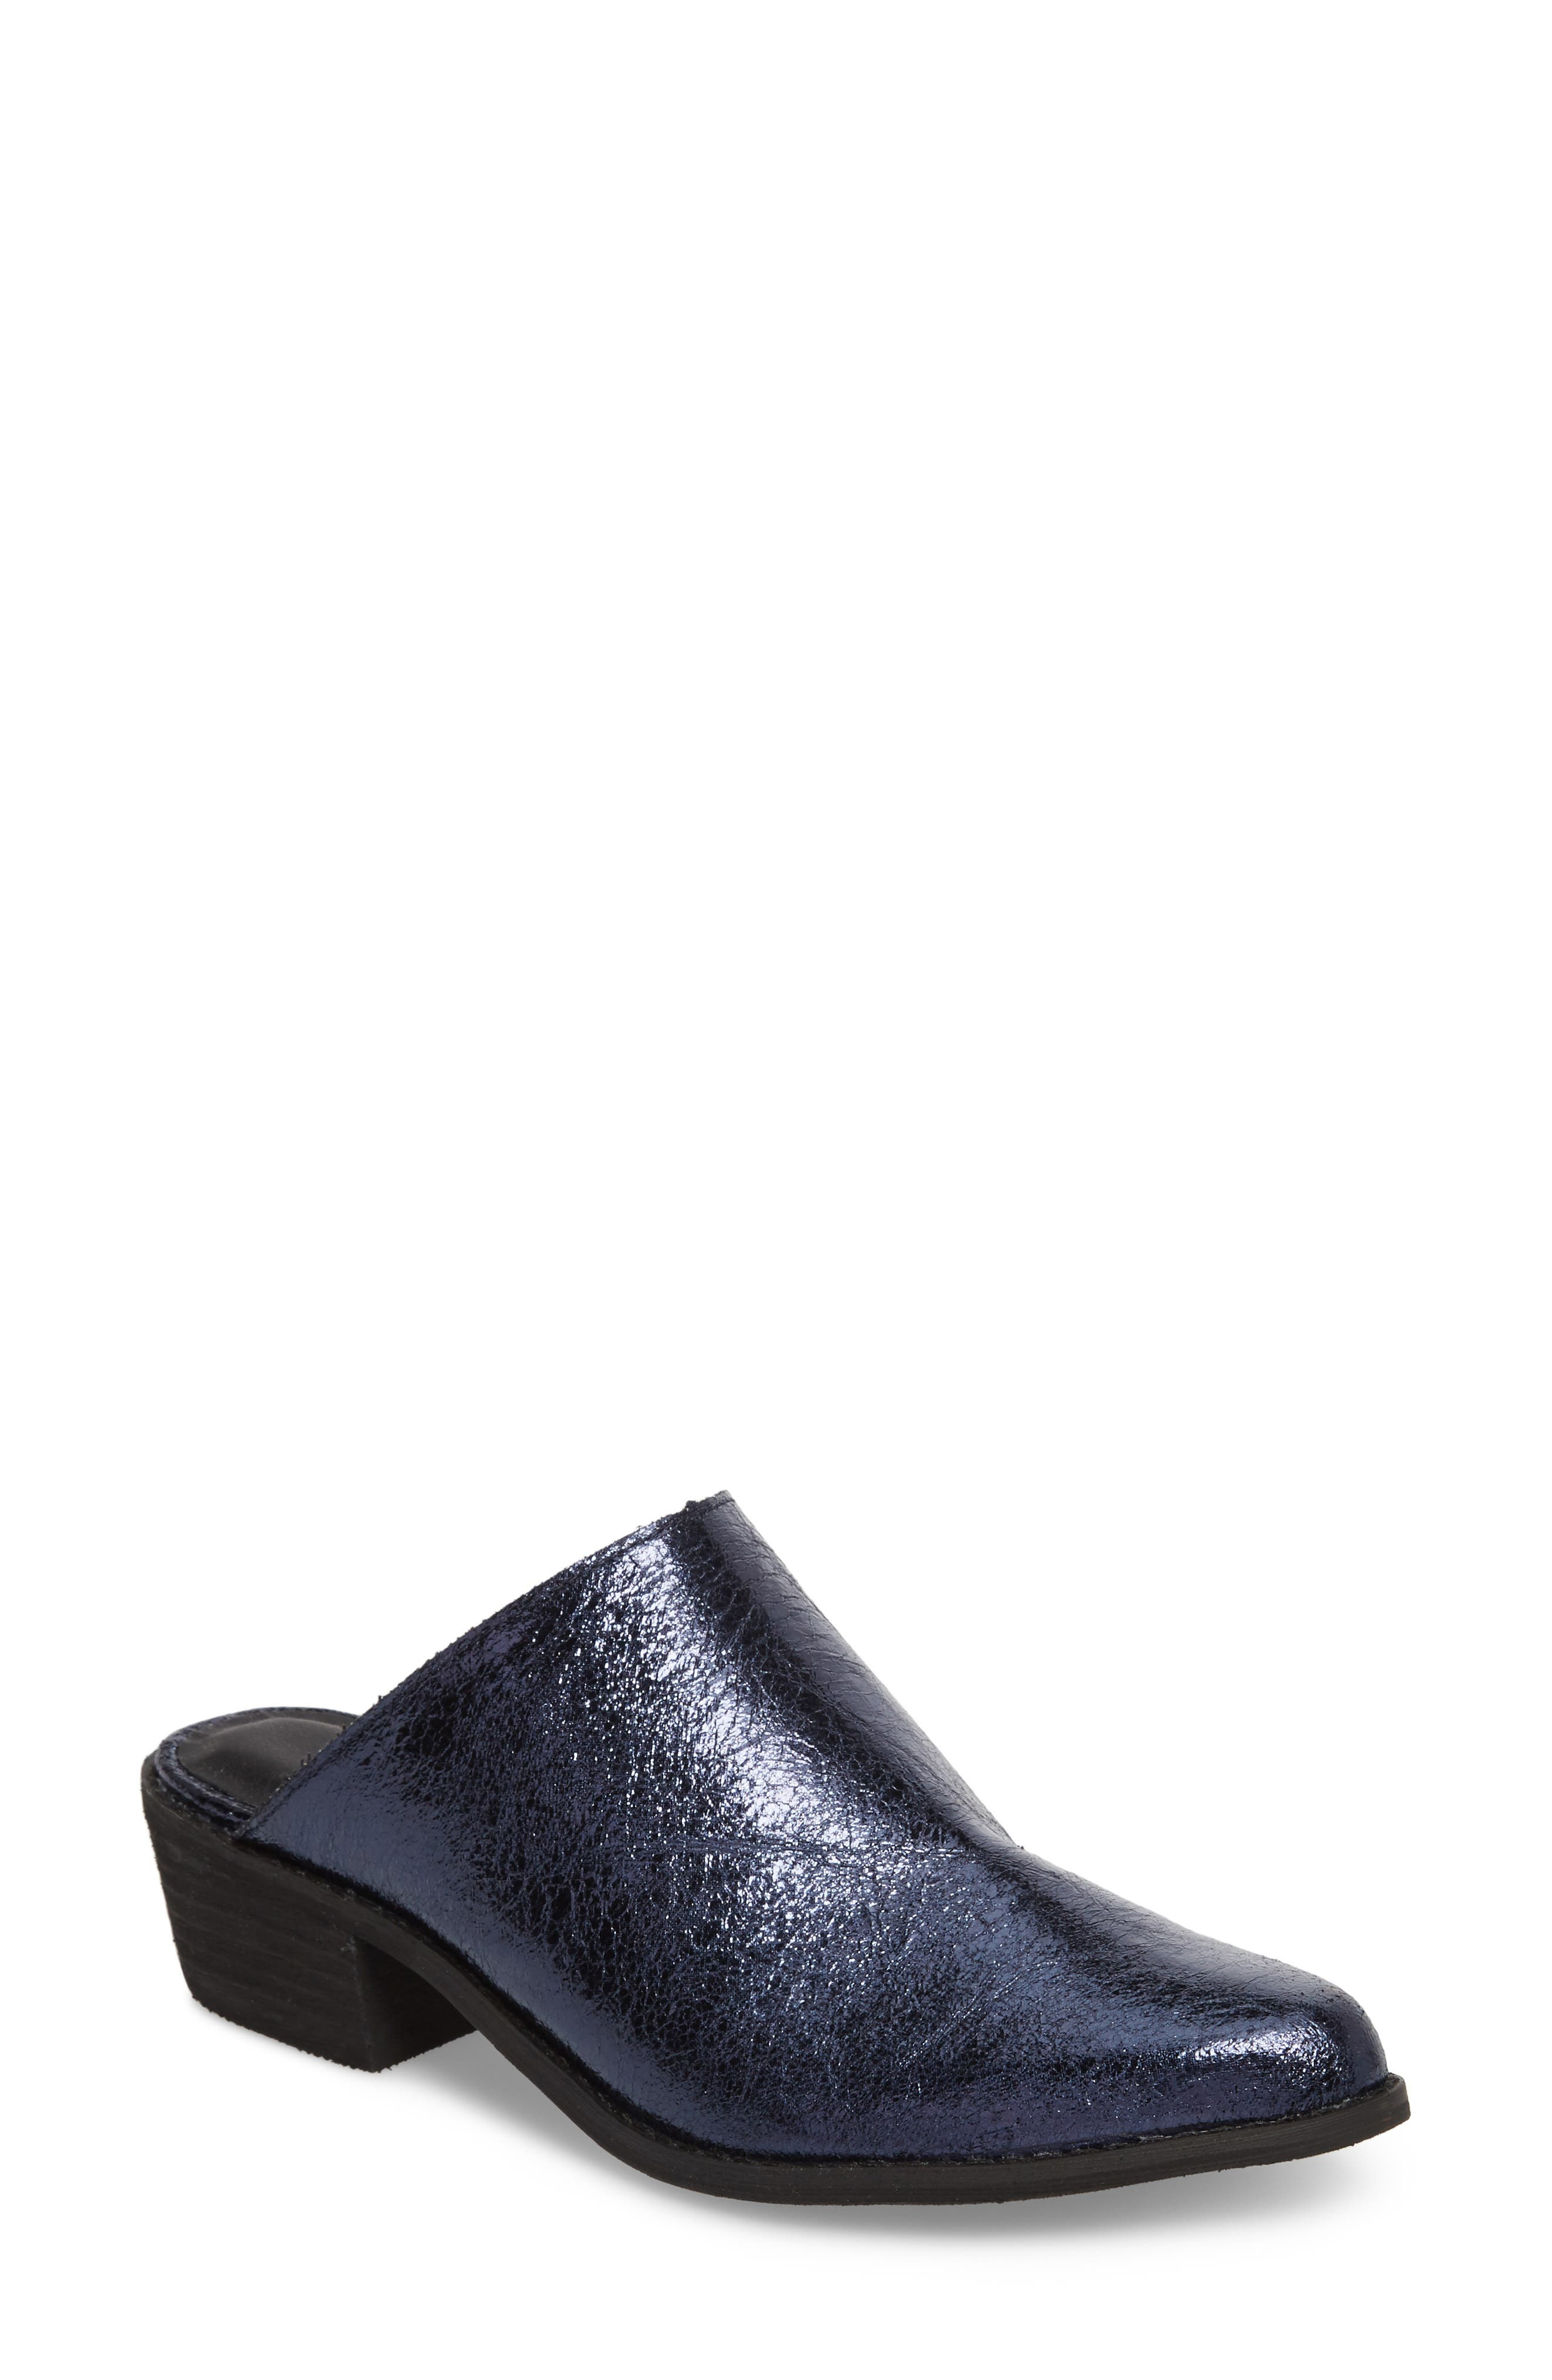 Finesse Mule,                         Main,                         color, Navy